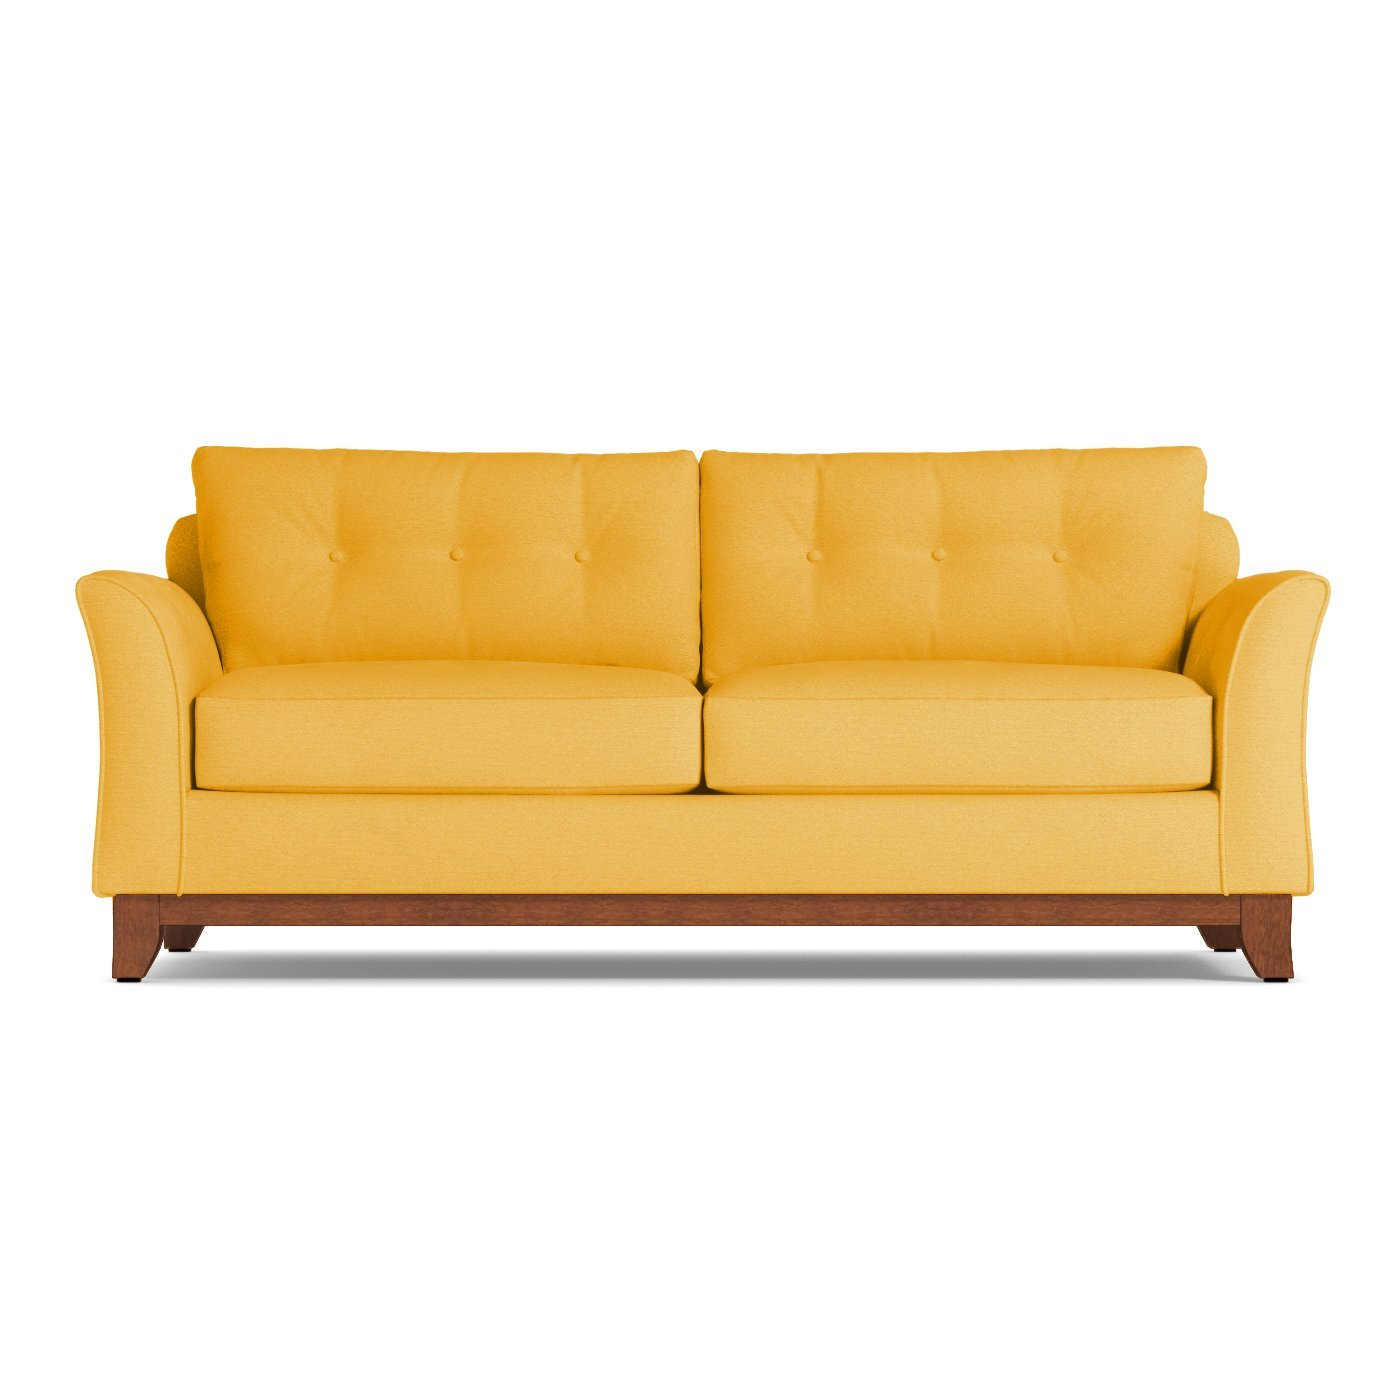 Marco Queen Size Sleeper Sofa Leg Finish Pecan